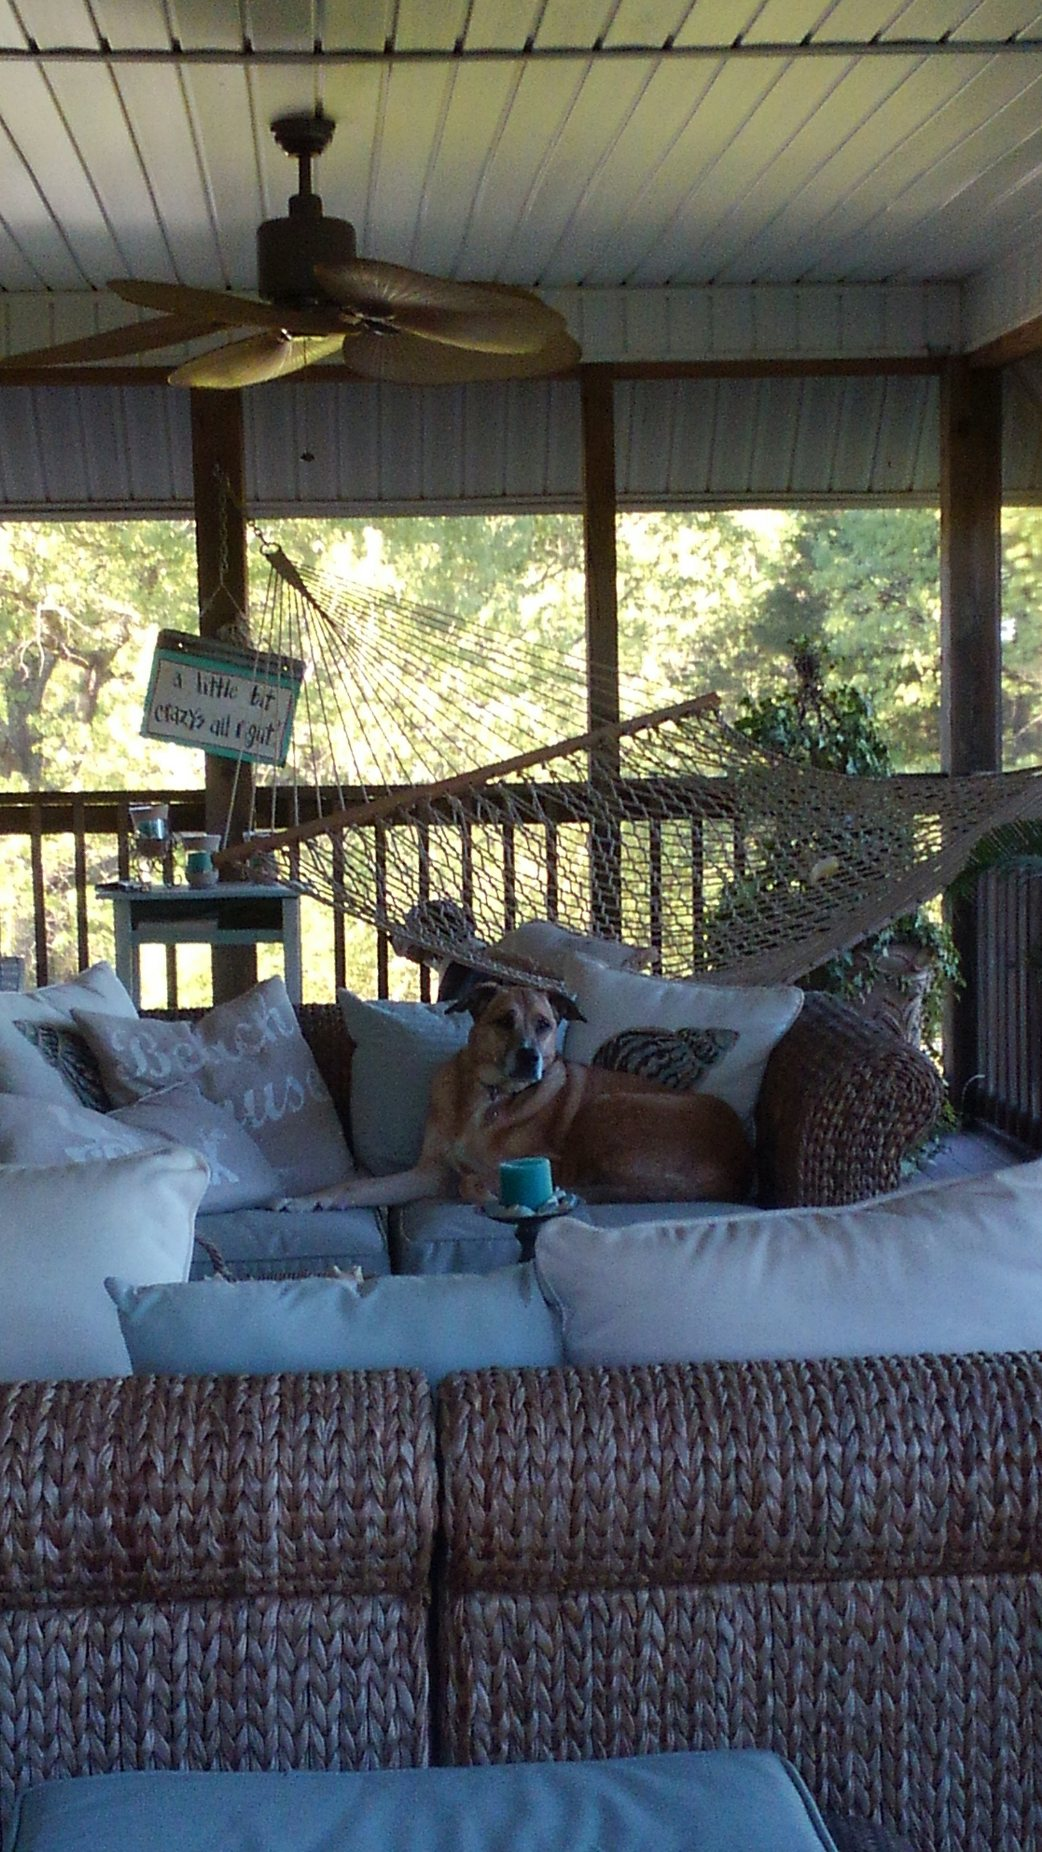 If a dog likes a porch…